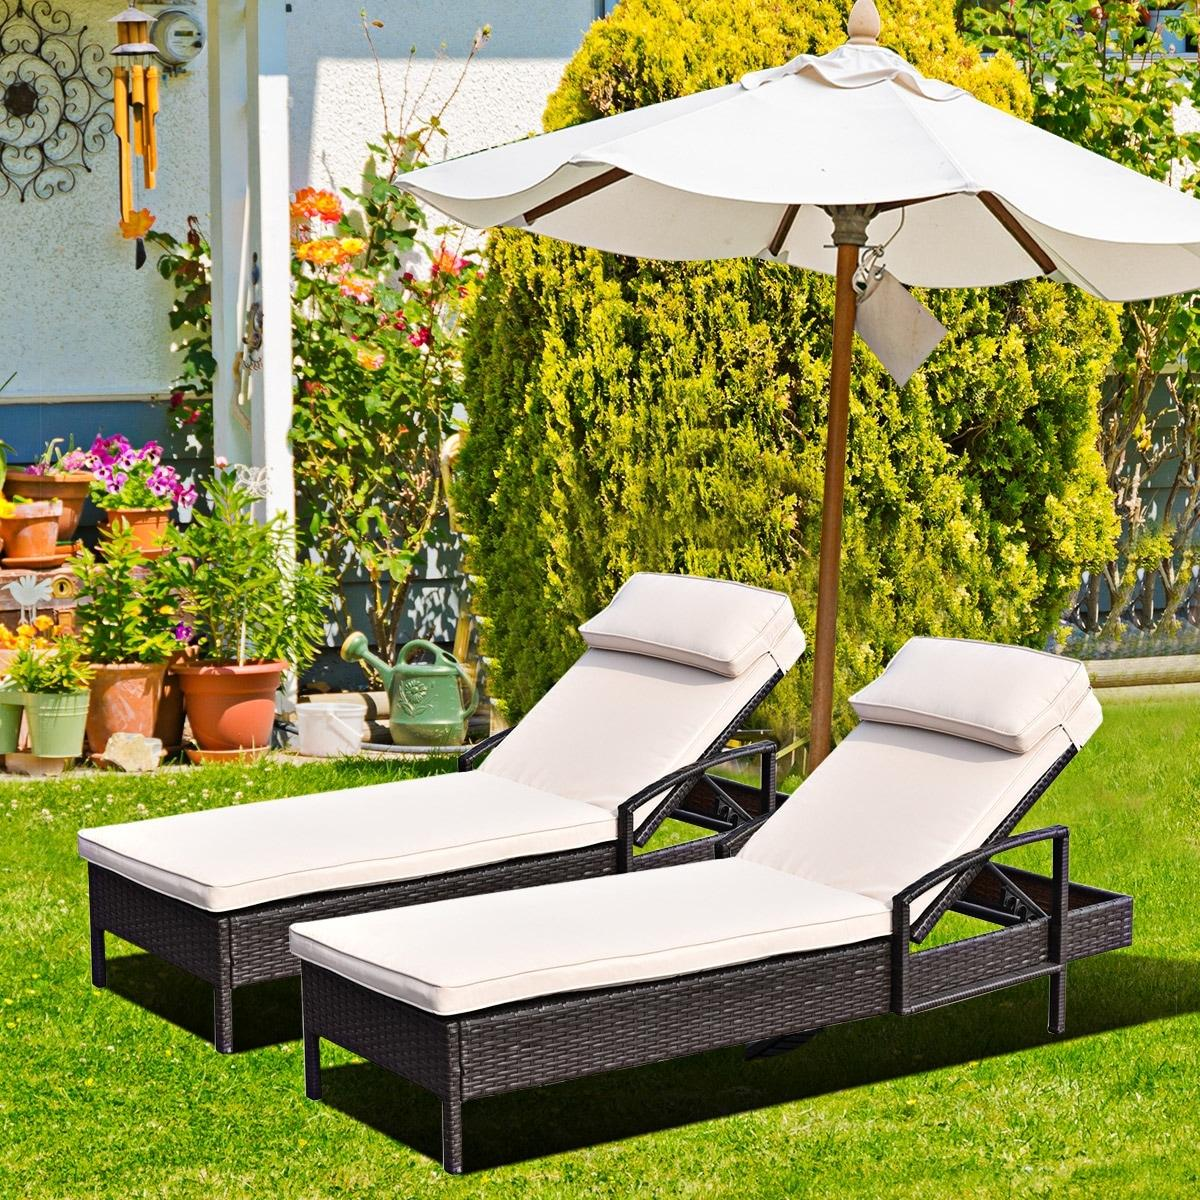 2 PCS Chaise Lounge Chair Brown Outdoor Rattan Couch Patio Furniture W/Pillow